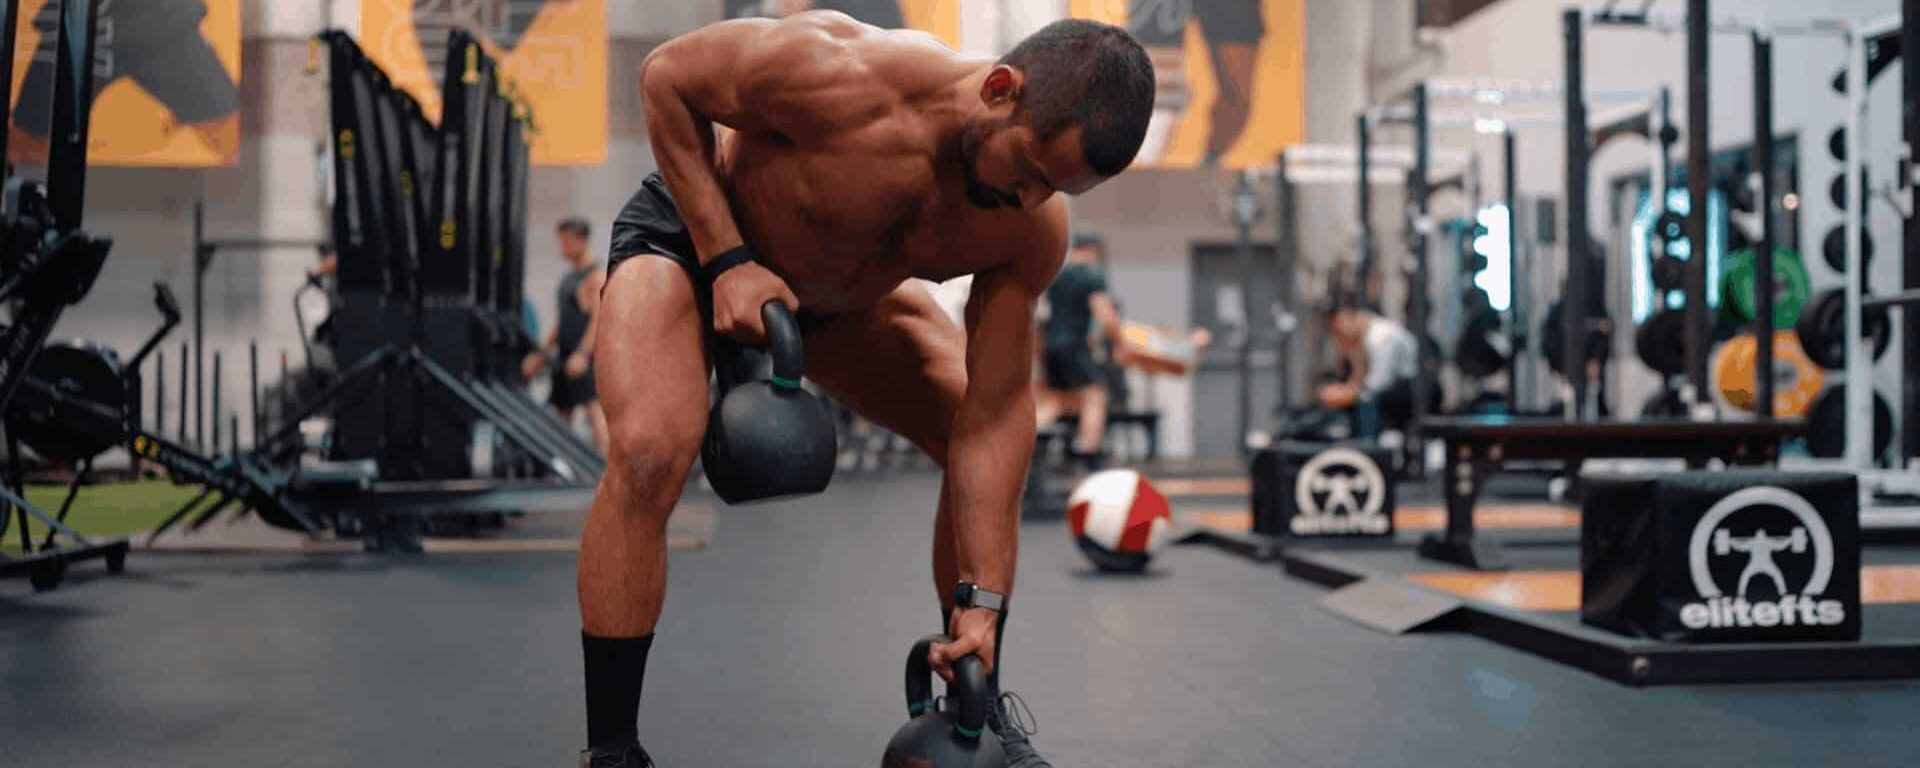 The Kettlebell Shortage of 2020